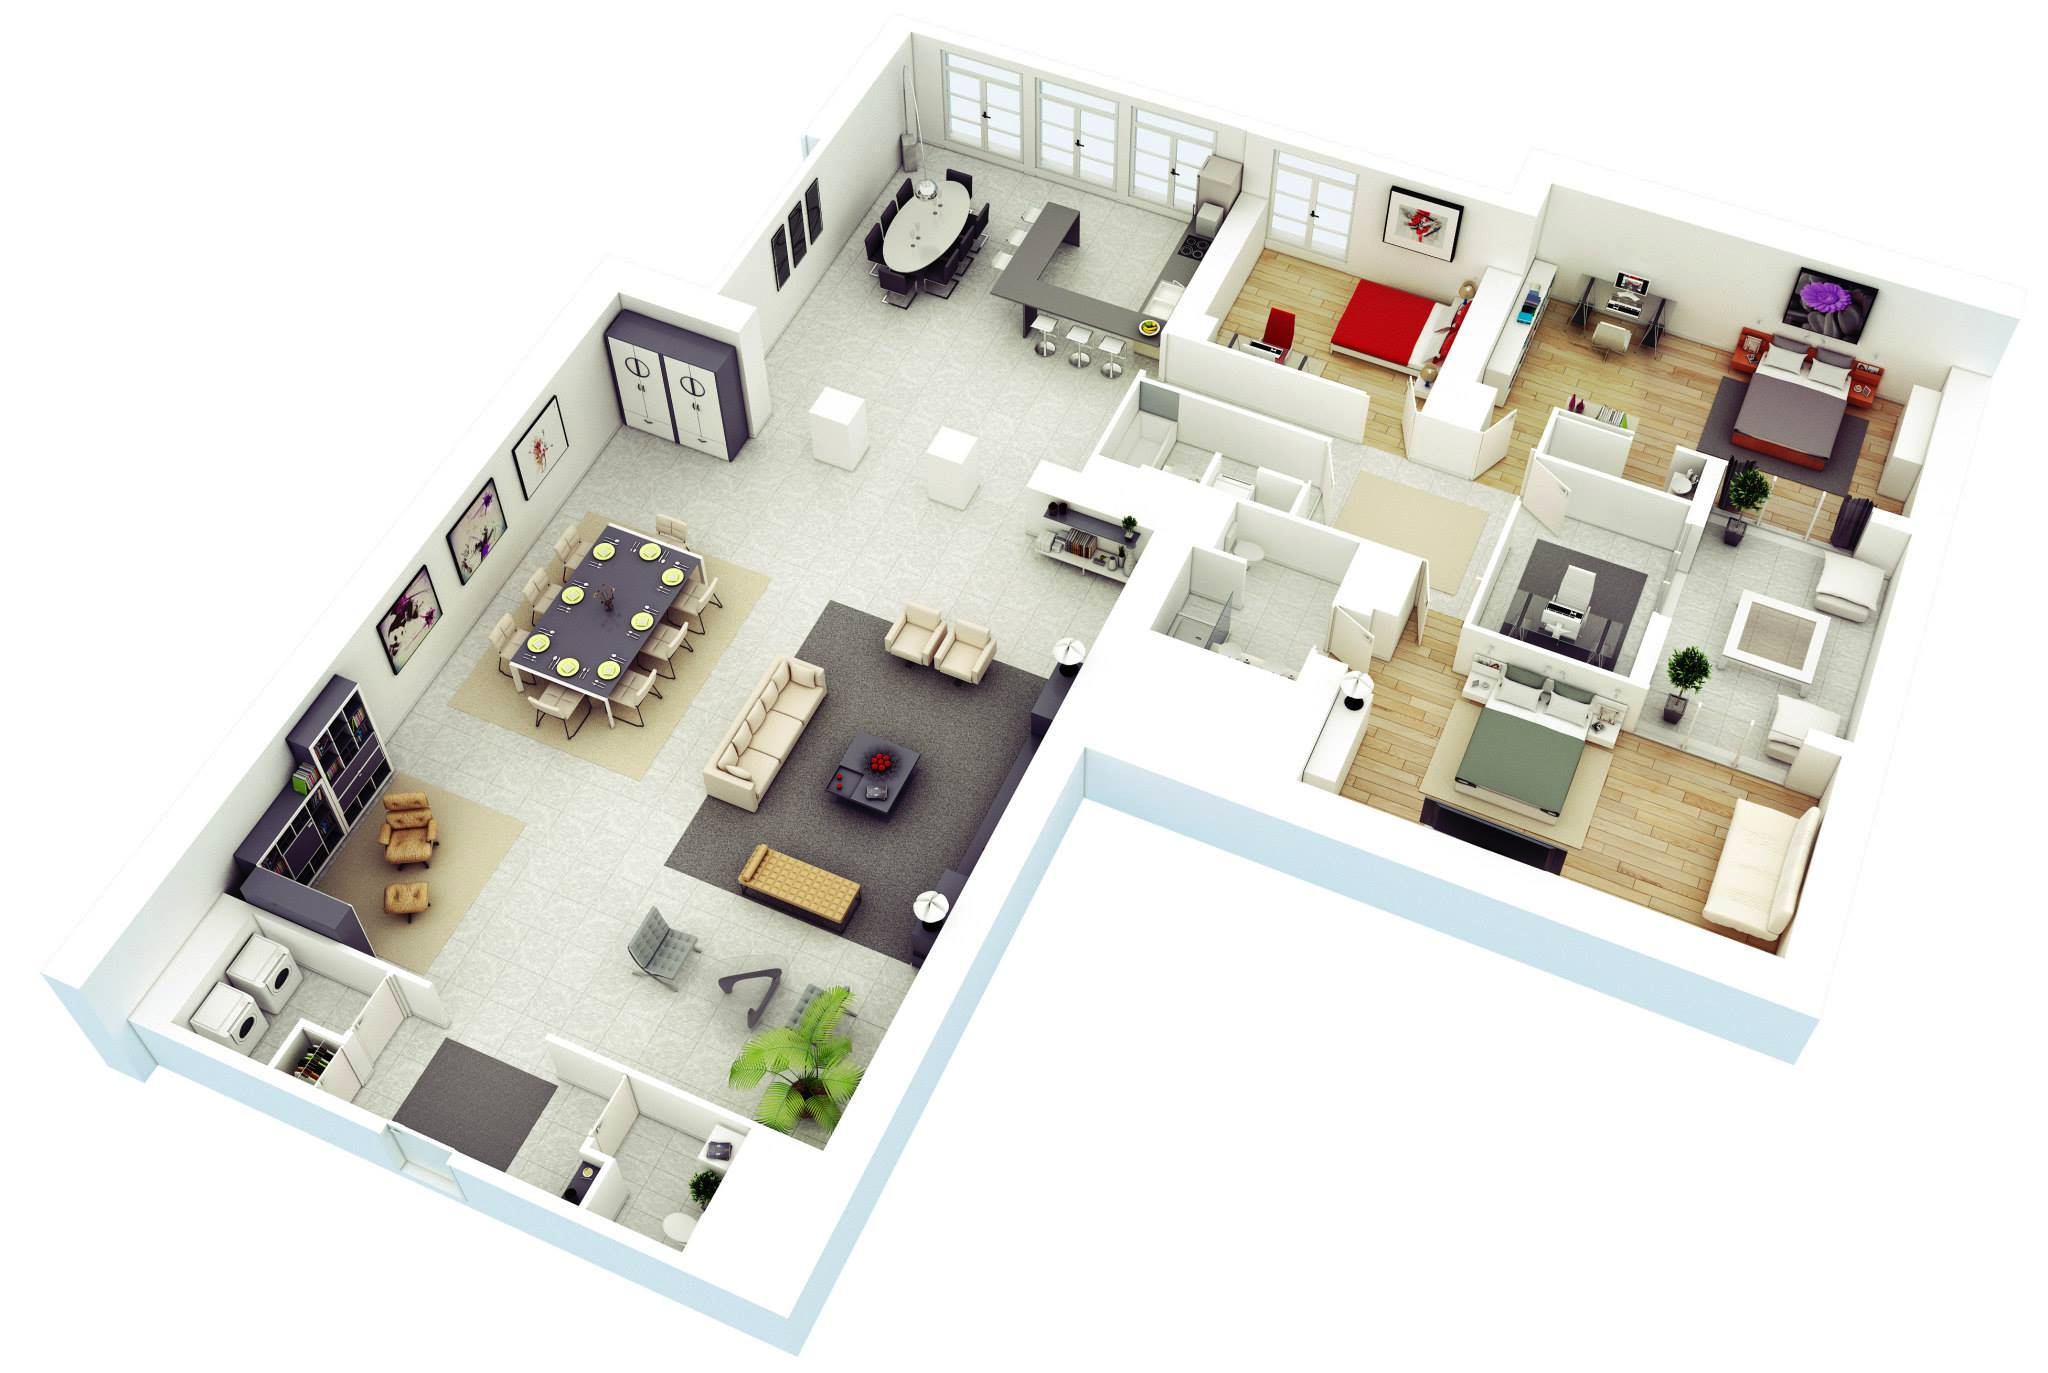 25 more 3 bedroom 3d floor plans - House Plans In 3d For Free